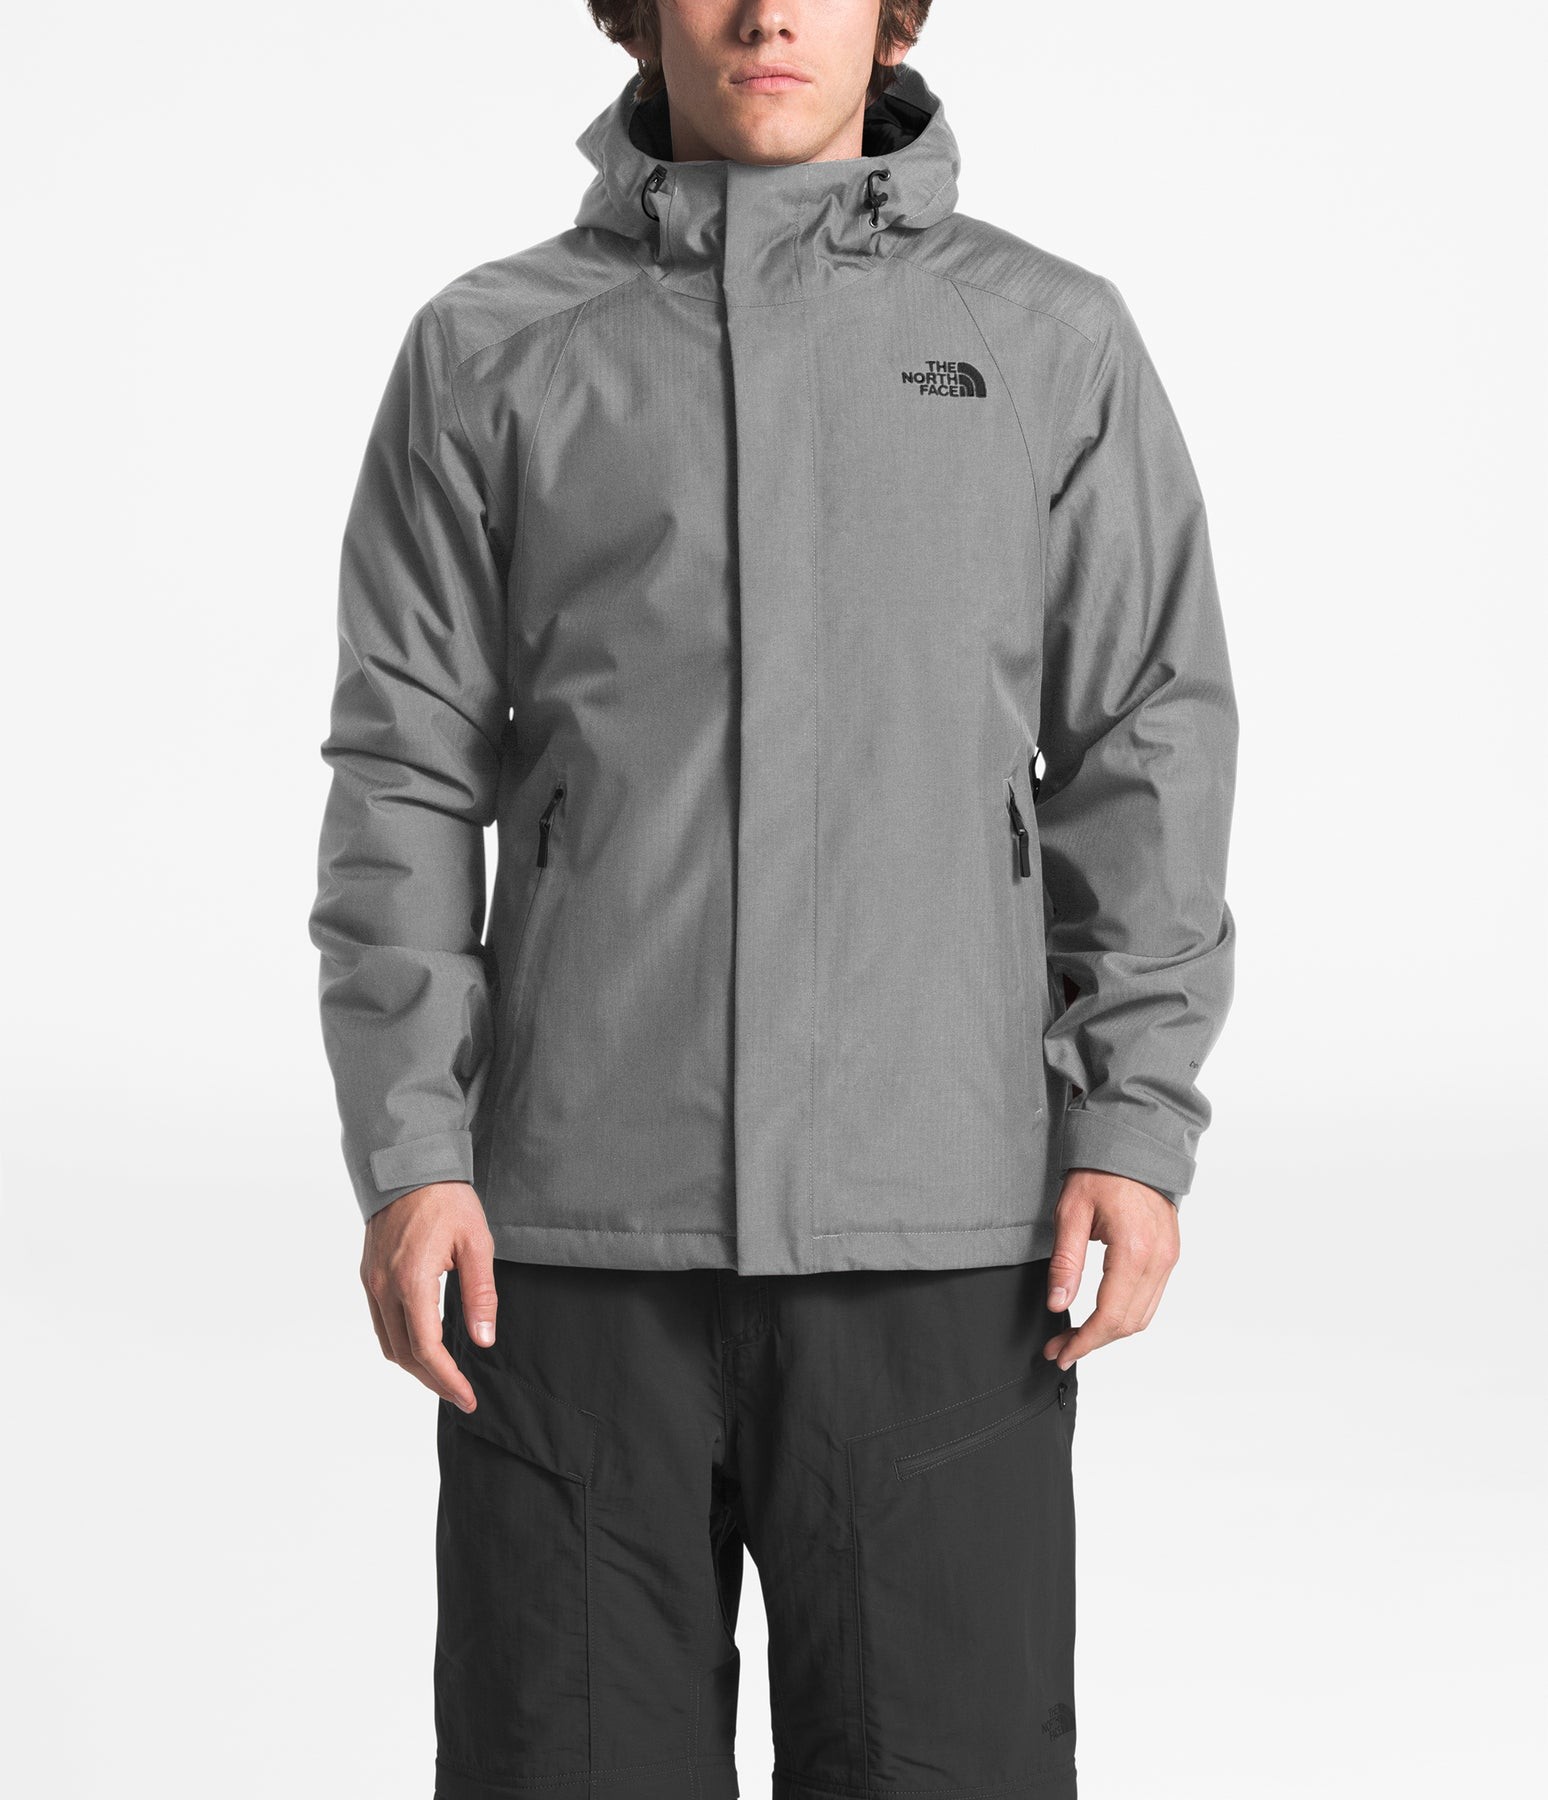 d2684b694 The North Face Men's Inlux Insulated Jacket - A2TBR - TNF Medium Grey  Heather